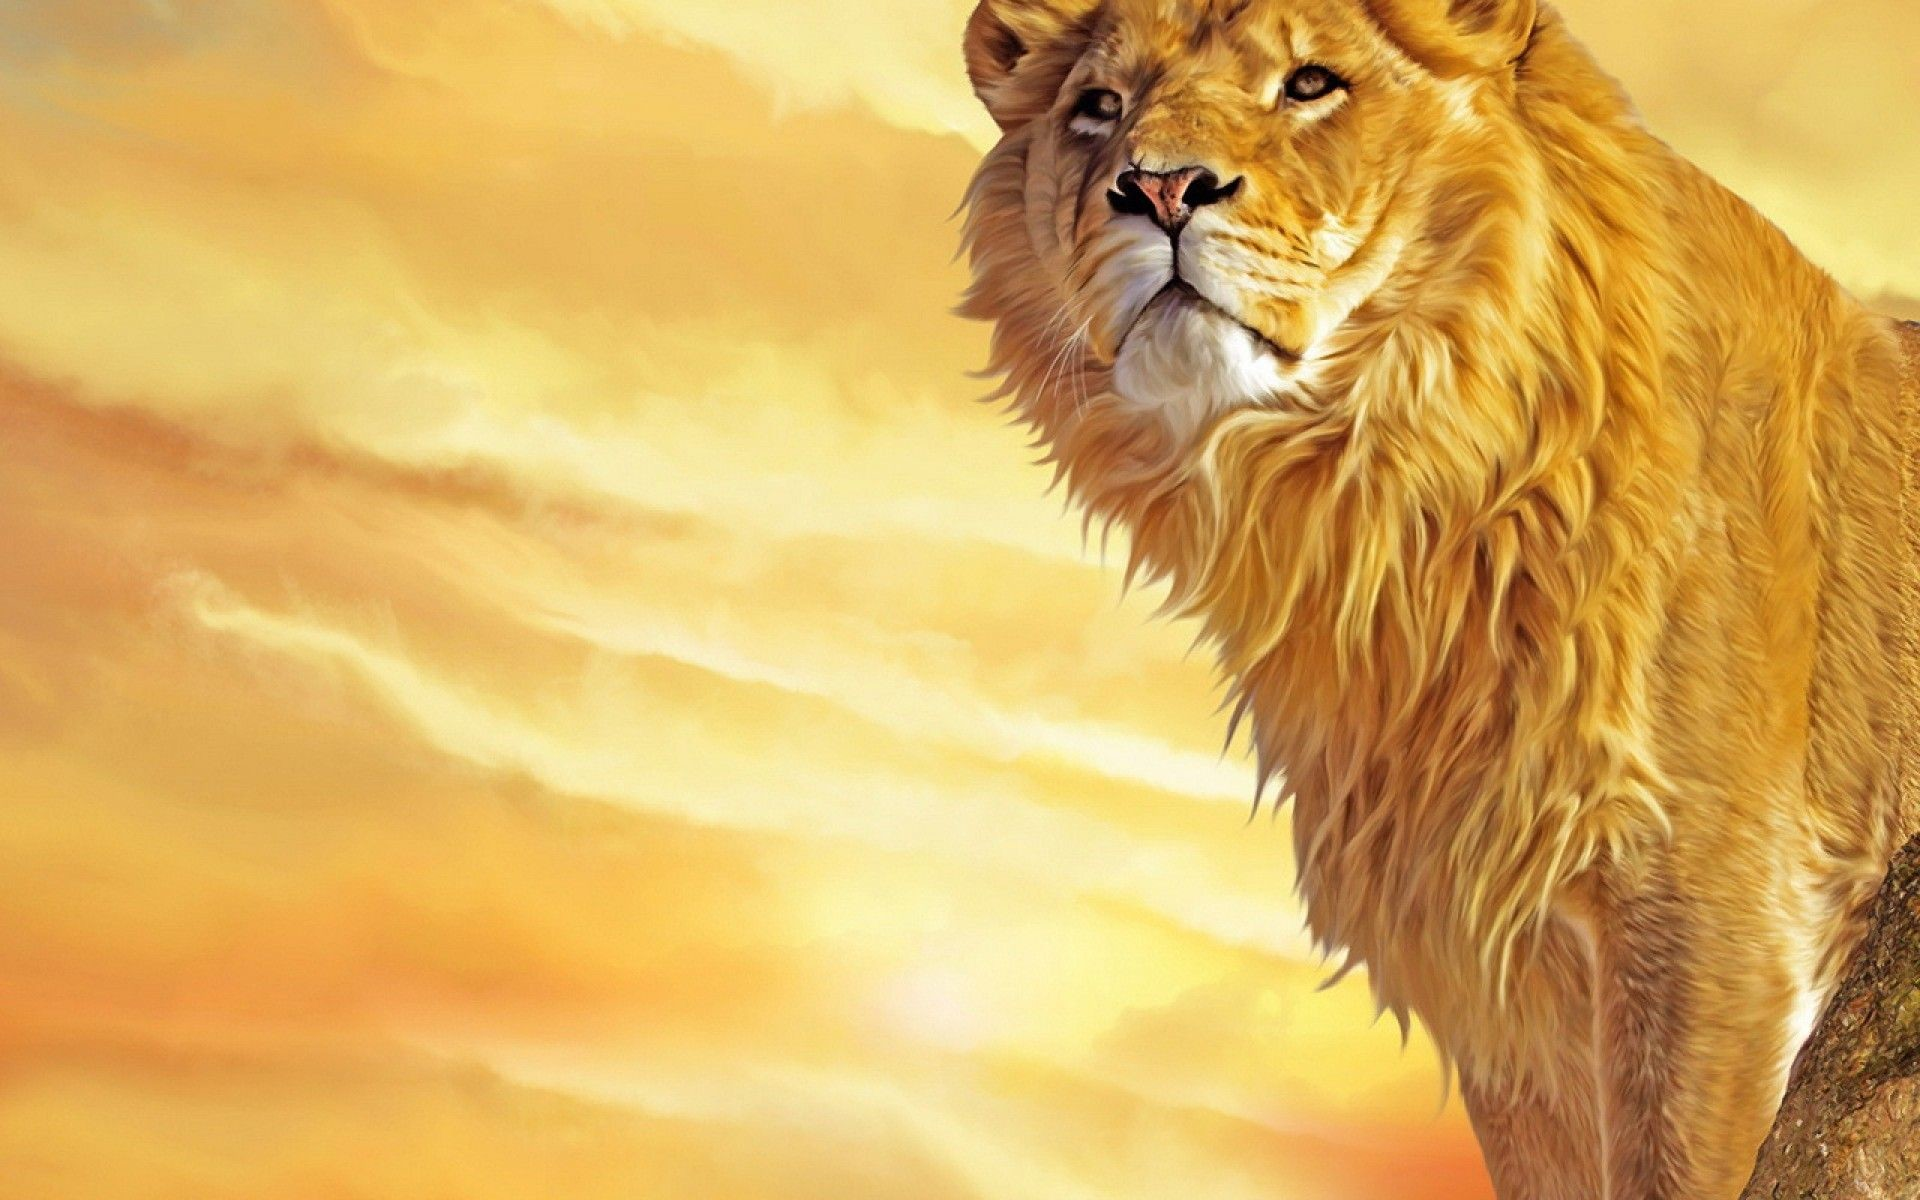 1920x1200 Angry Lion Wallpaper | HD Animals | Pinterest | Nature wallpaper, Lions and  Wallpaper